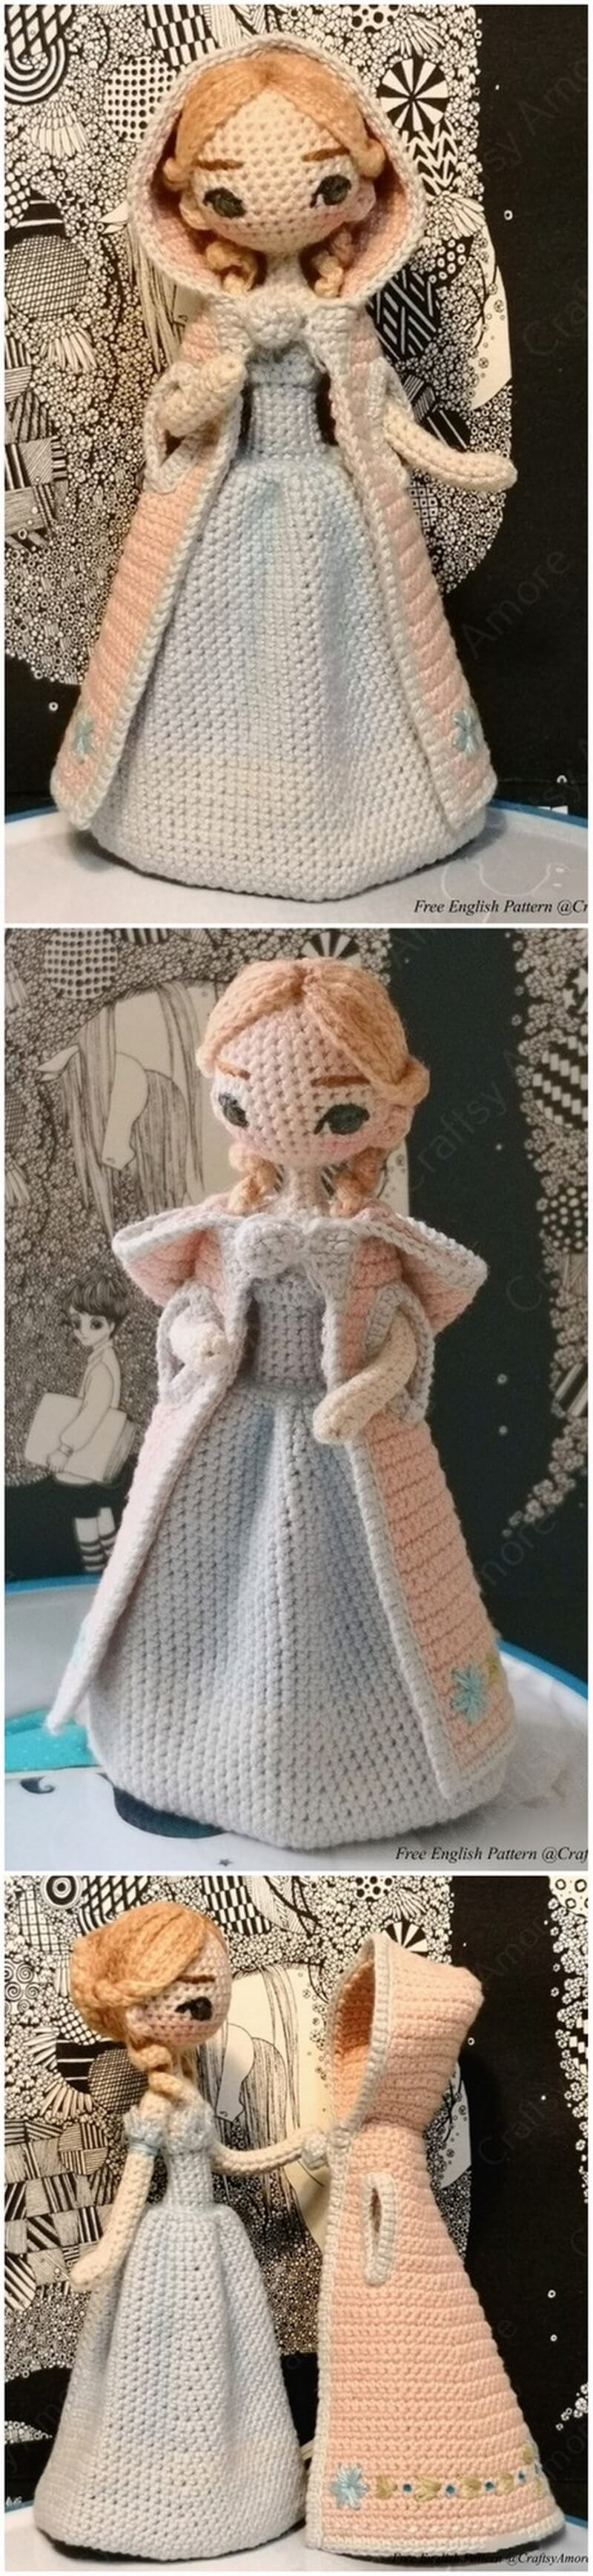 Crochet Amigurumi Doll Pattern (19)